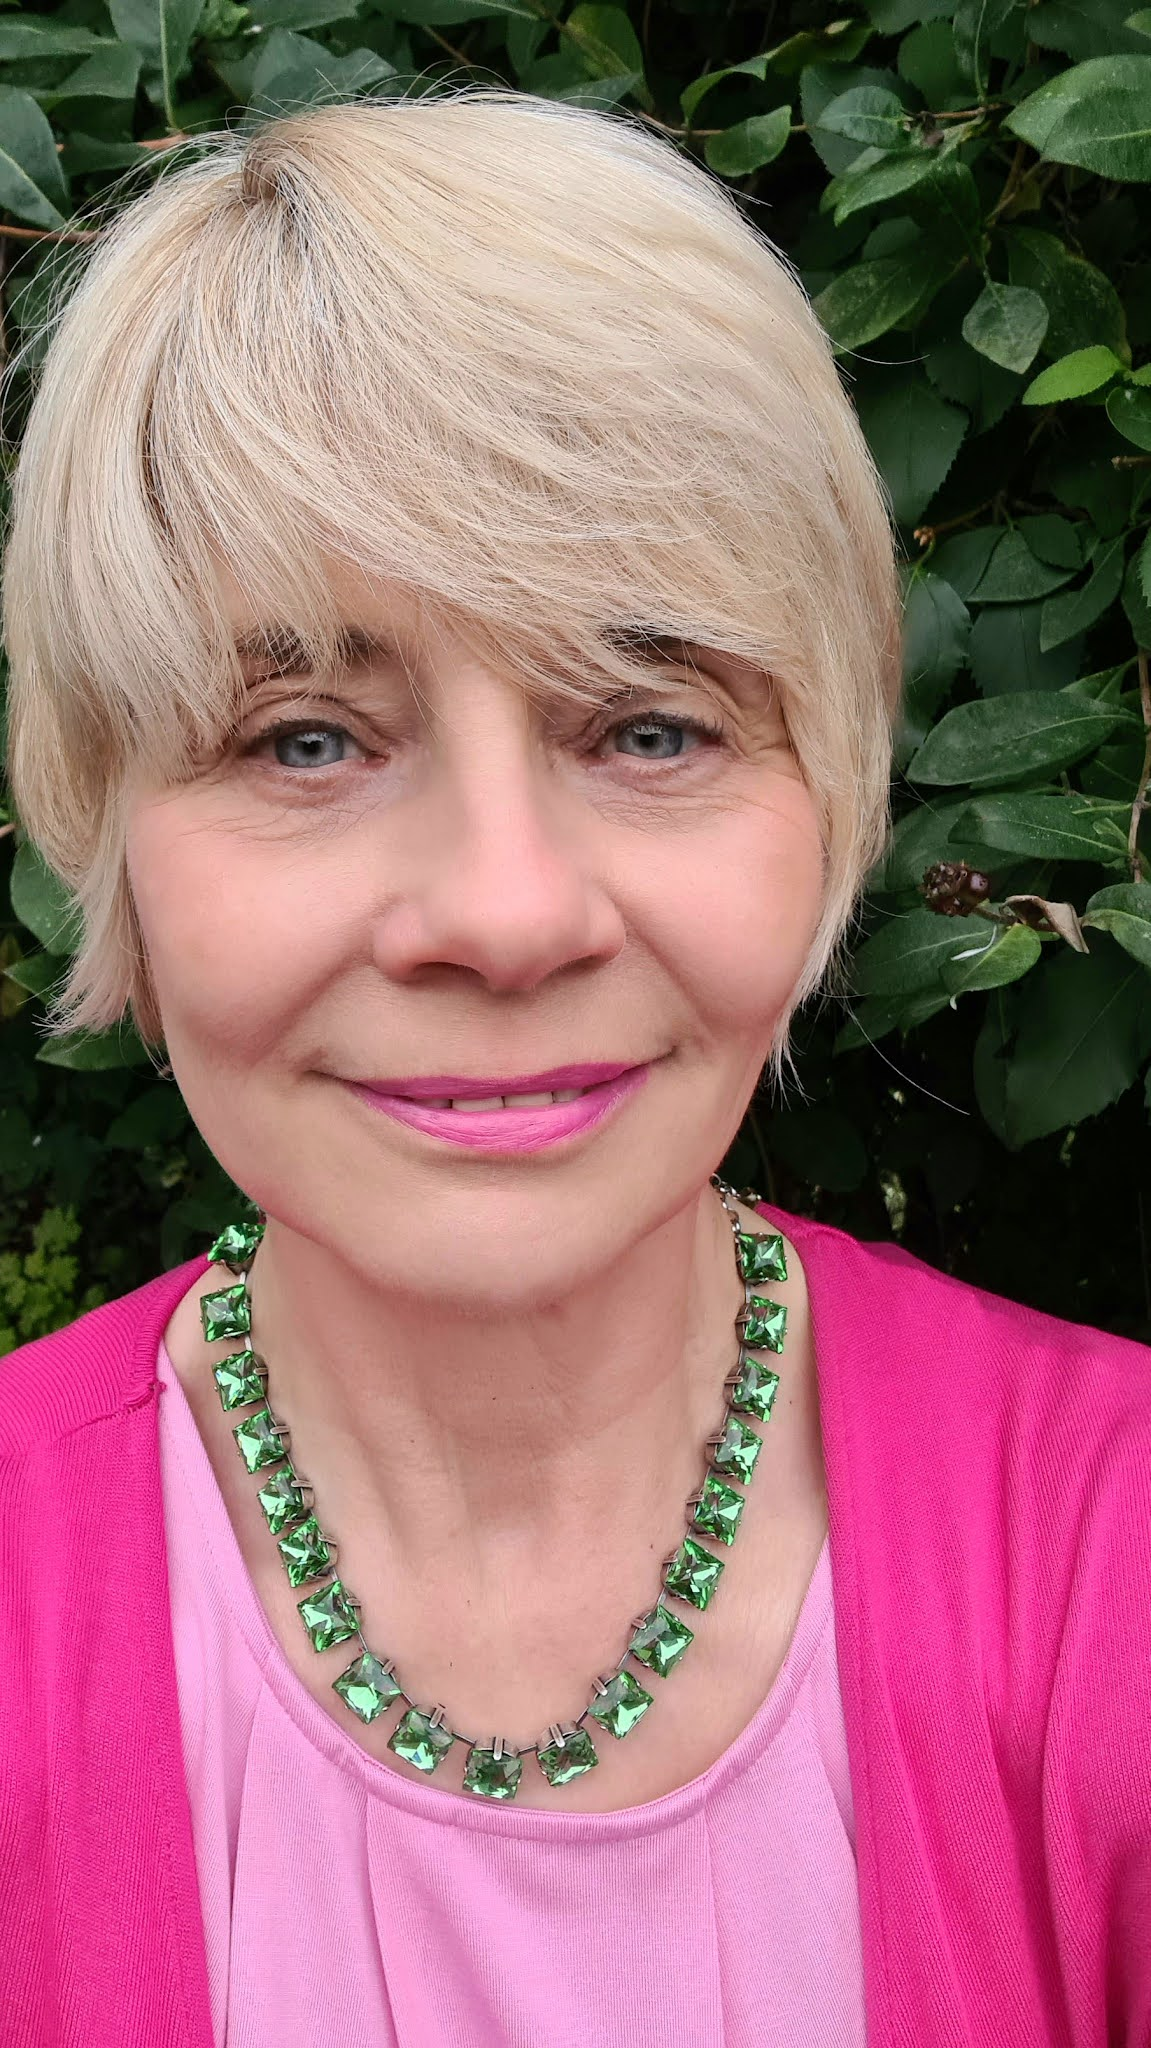 Head shot of Gail Hanlon from over 50s blog Is This Mutton in fuchsia pink with a green Anna Wintour necklace